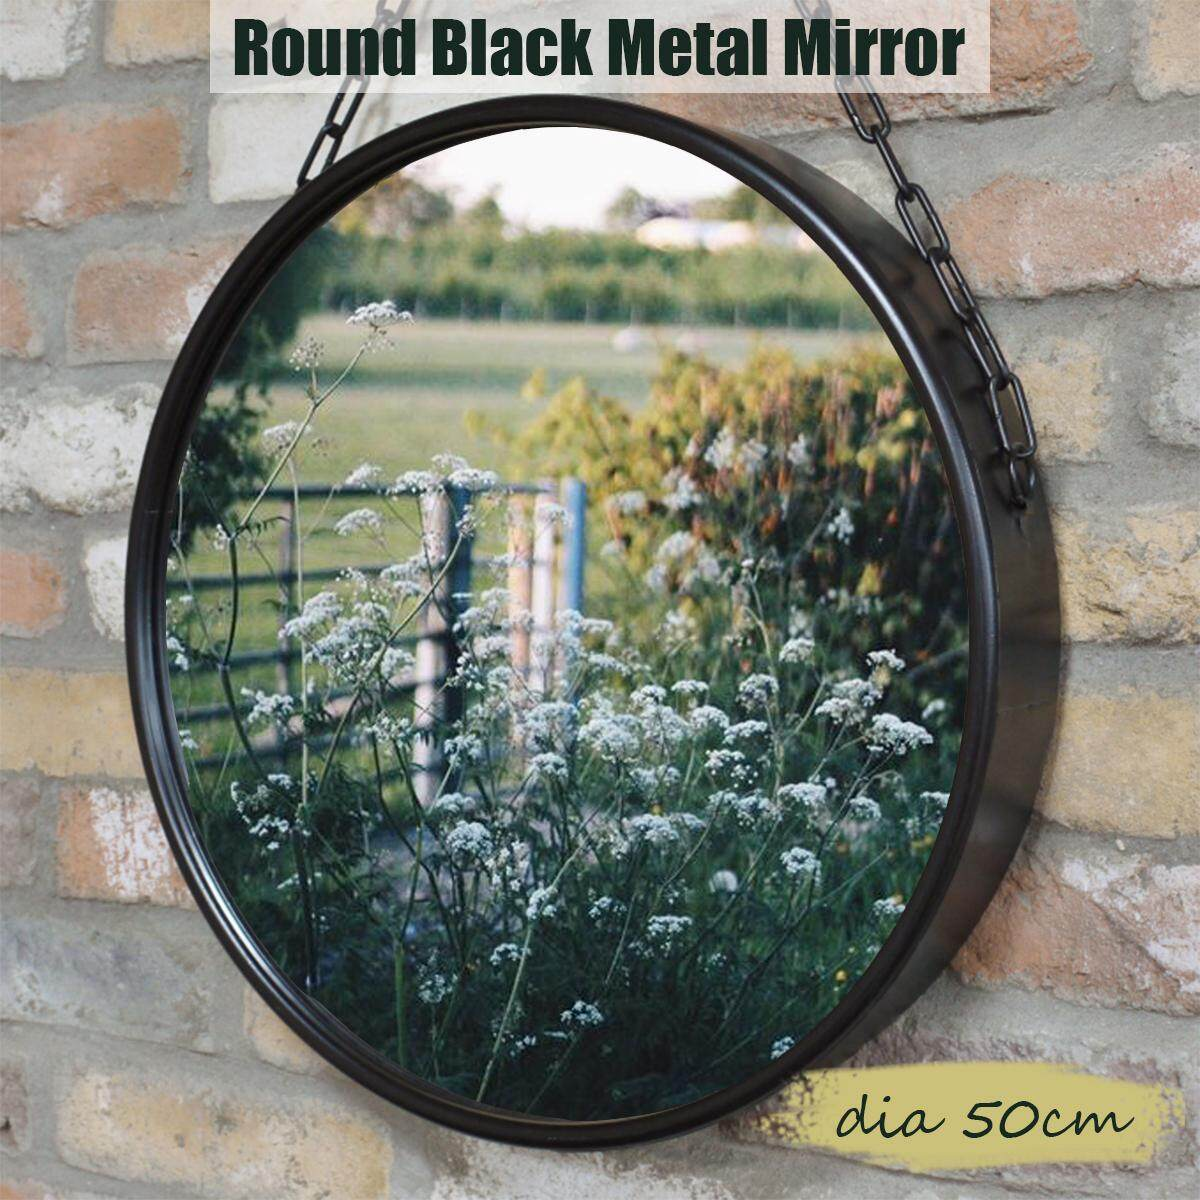 Round Industrial Black Metal Mirror Hanging Chain Wall Mounted Retro Decor(dia 50cm)